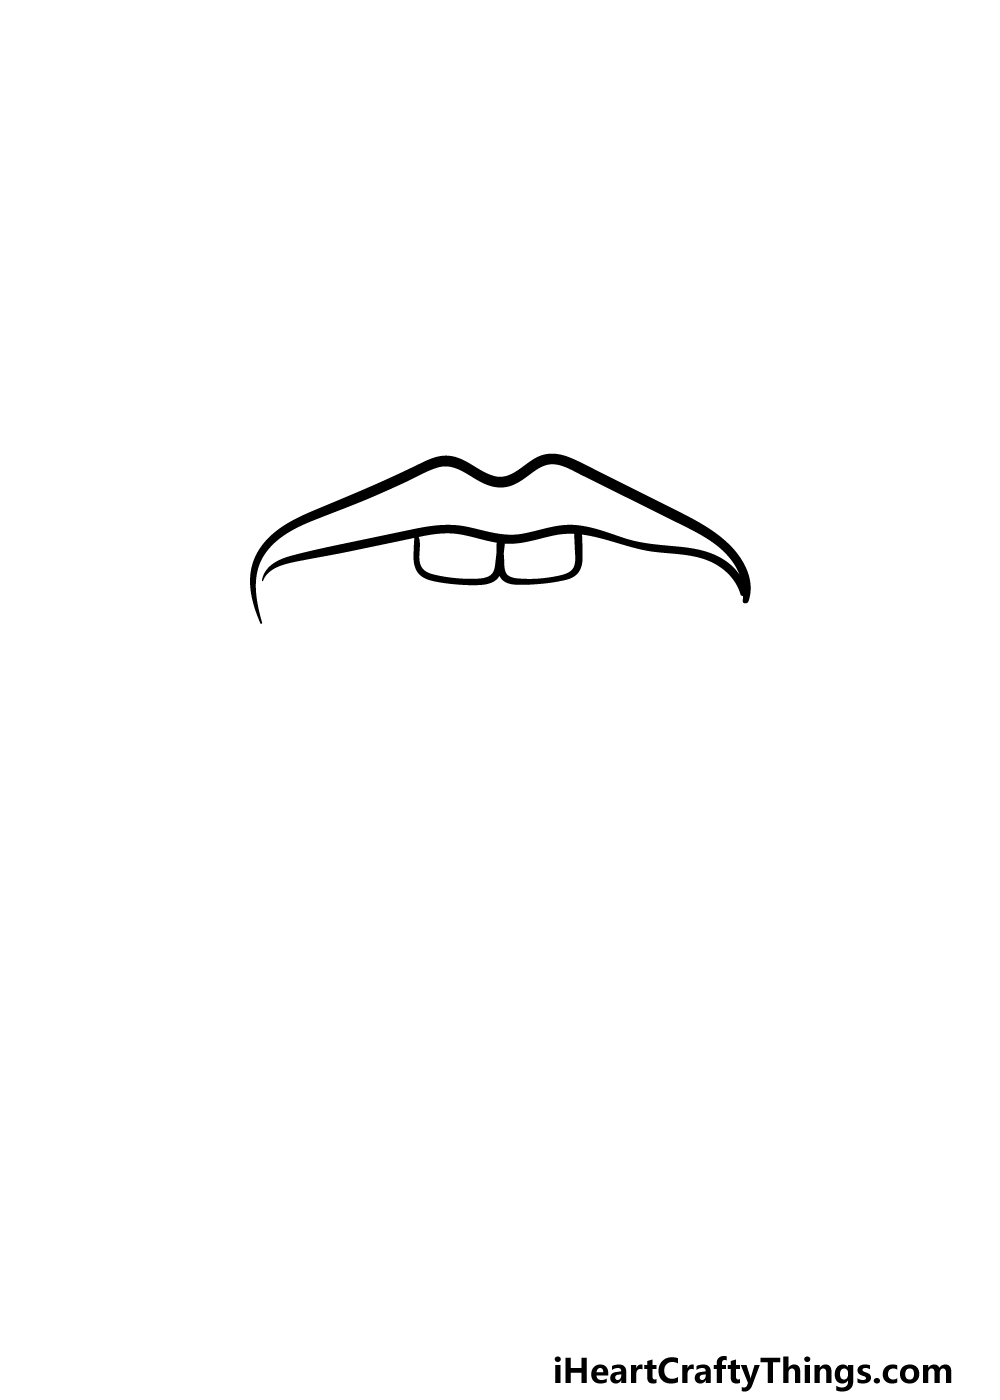 how to draw a tongue step 1